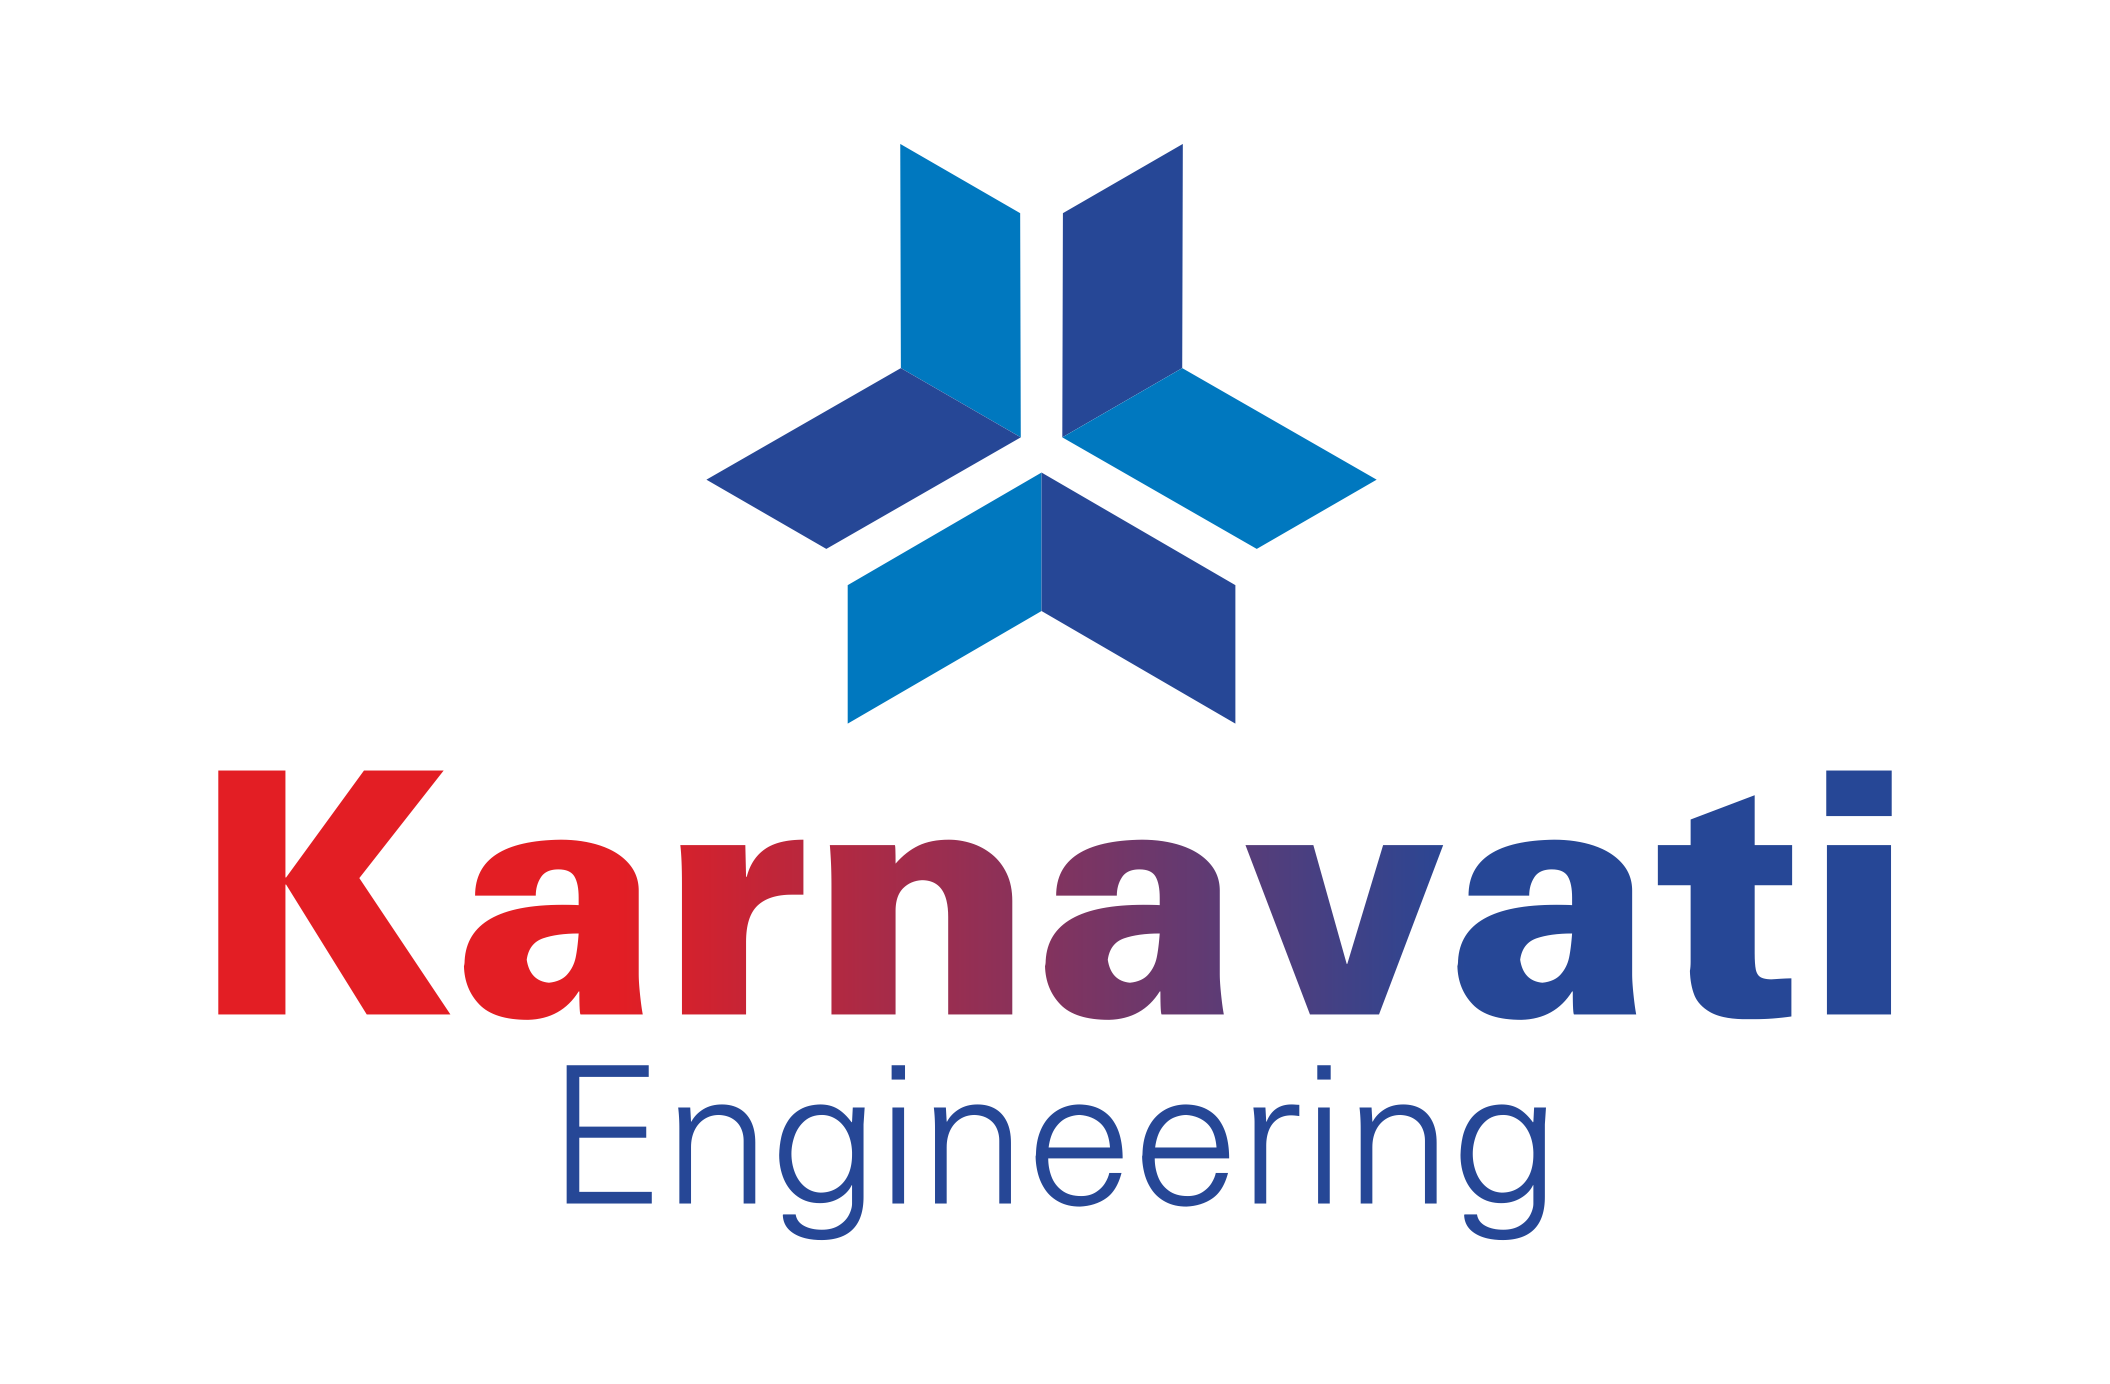 Karnavati Engineering